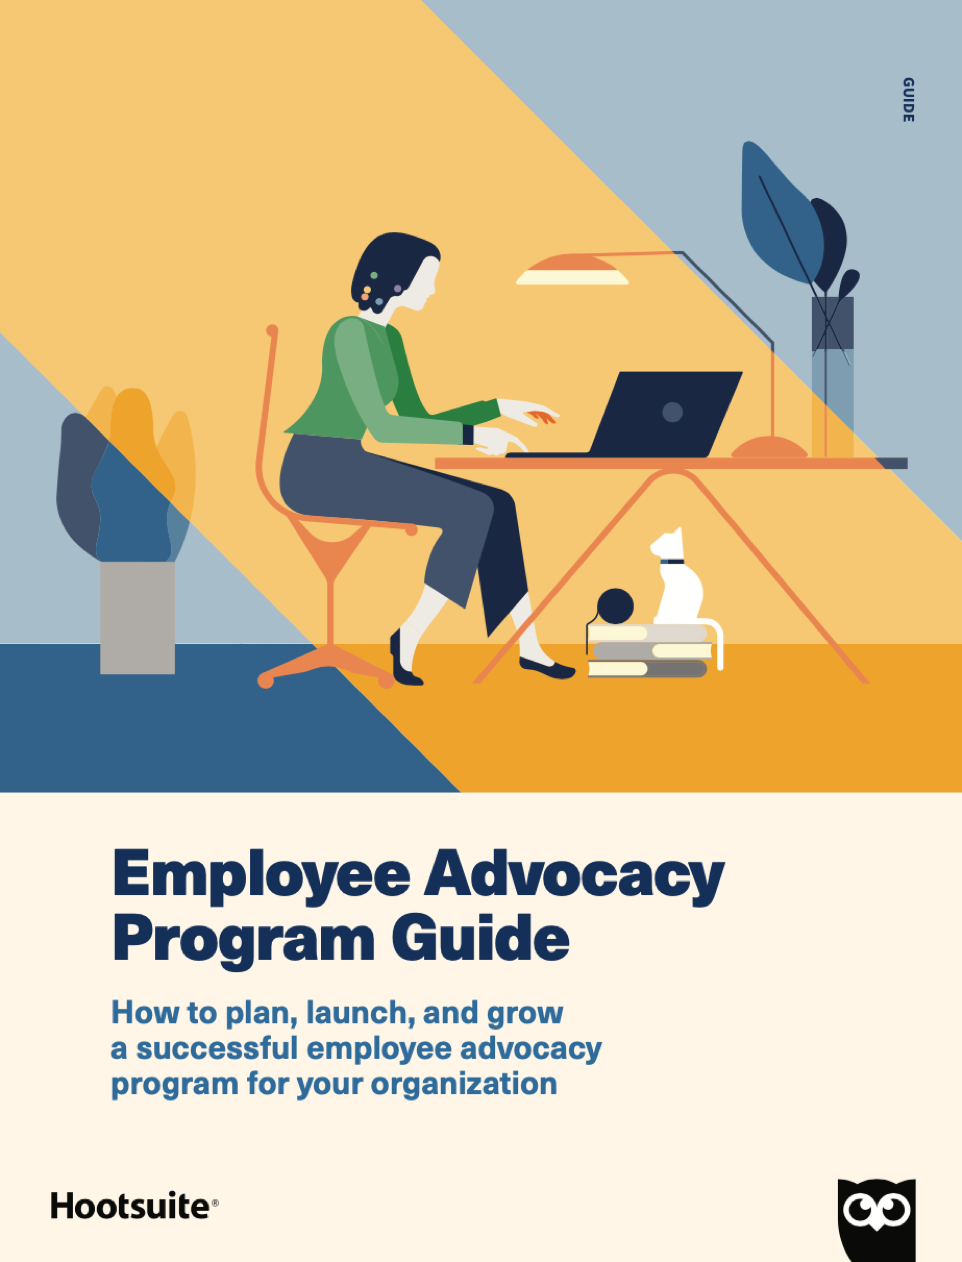 Employee Advocacy Program Guide at Social-Media.press